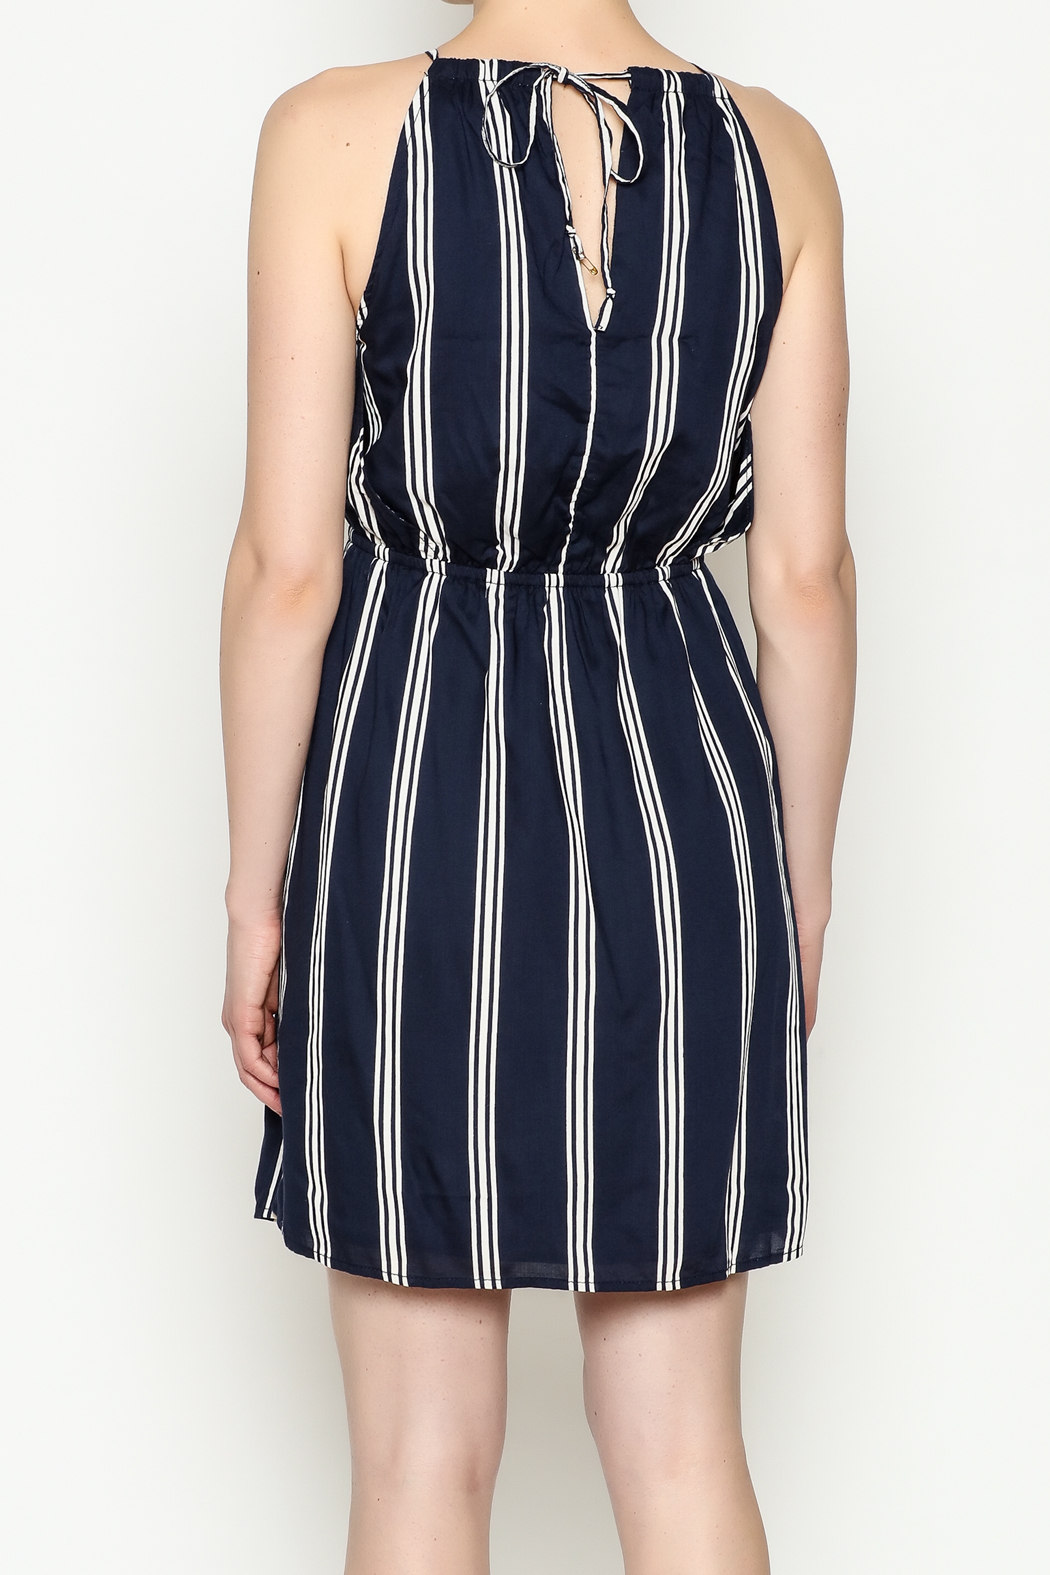 Olive & Oak Navy Stripe Dress - Back Cropped Image